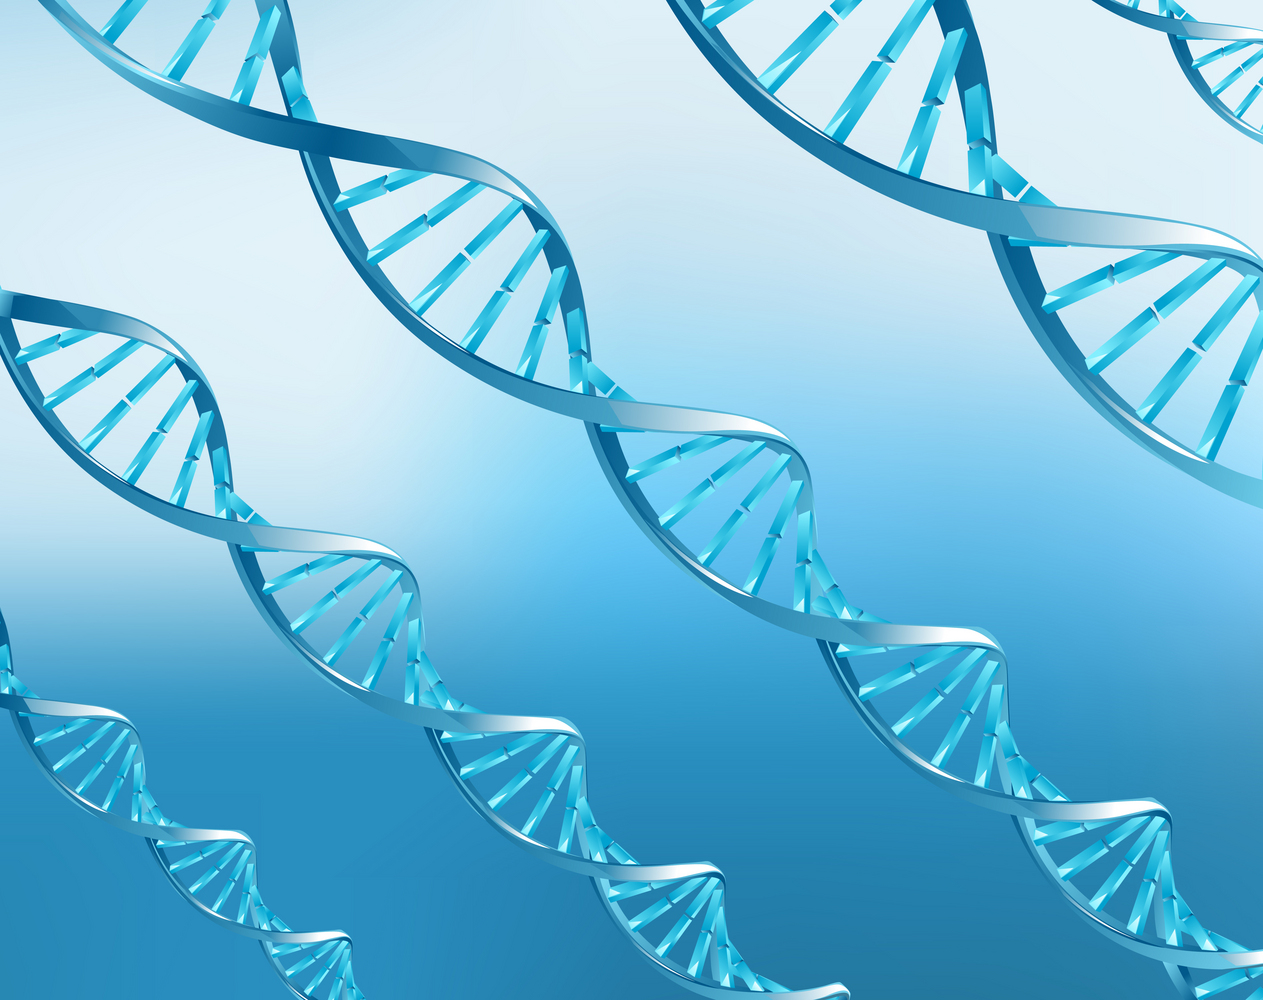 Covance Labs Rare and Orphan Drug Development DNA Strand